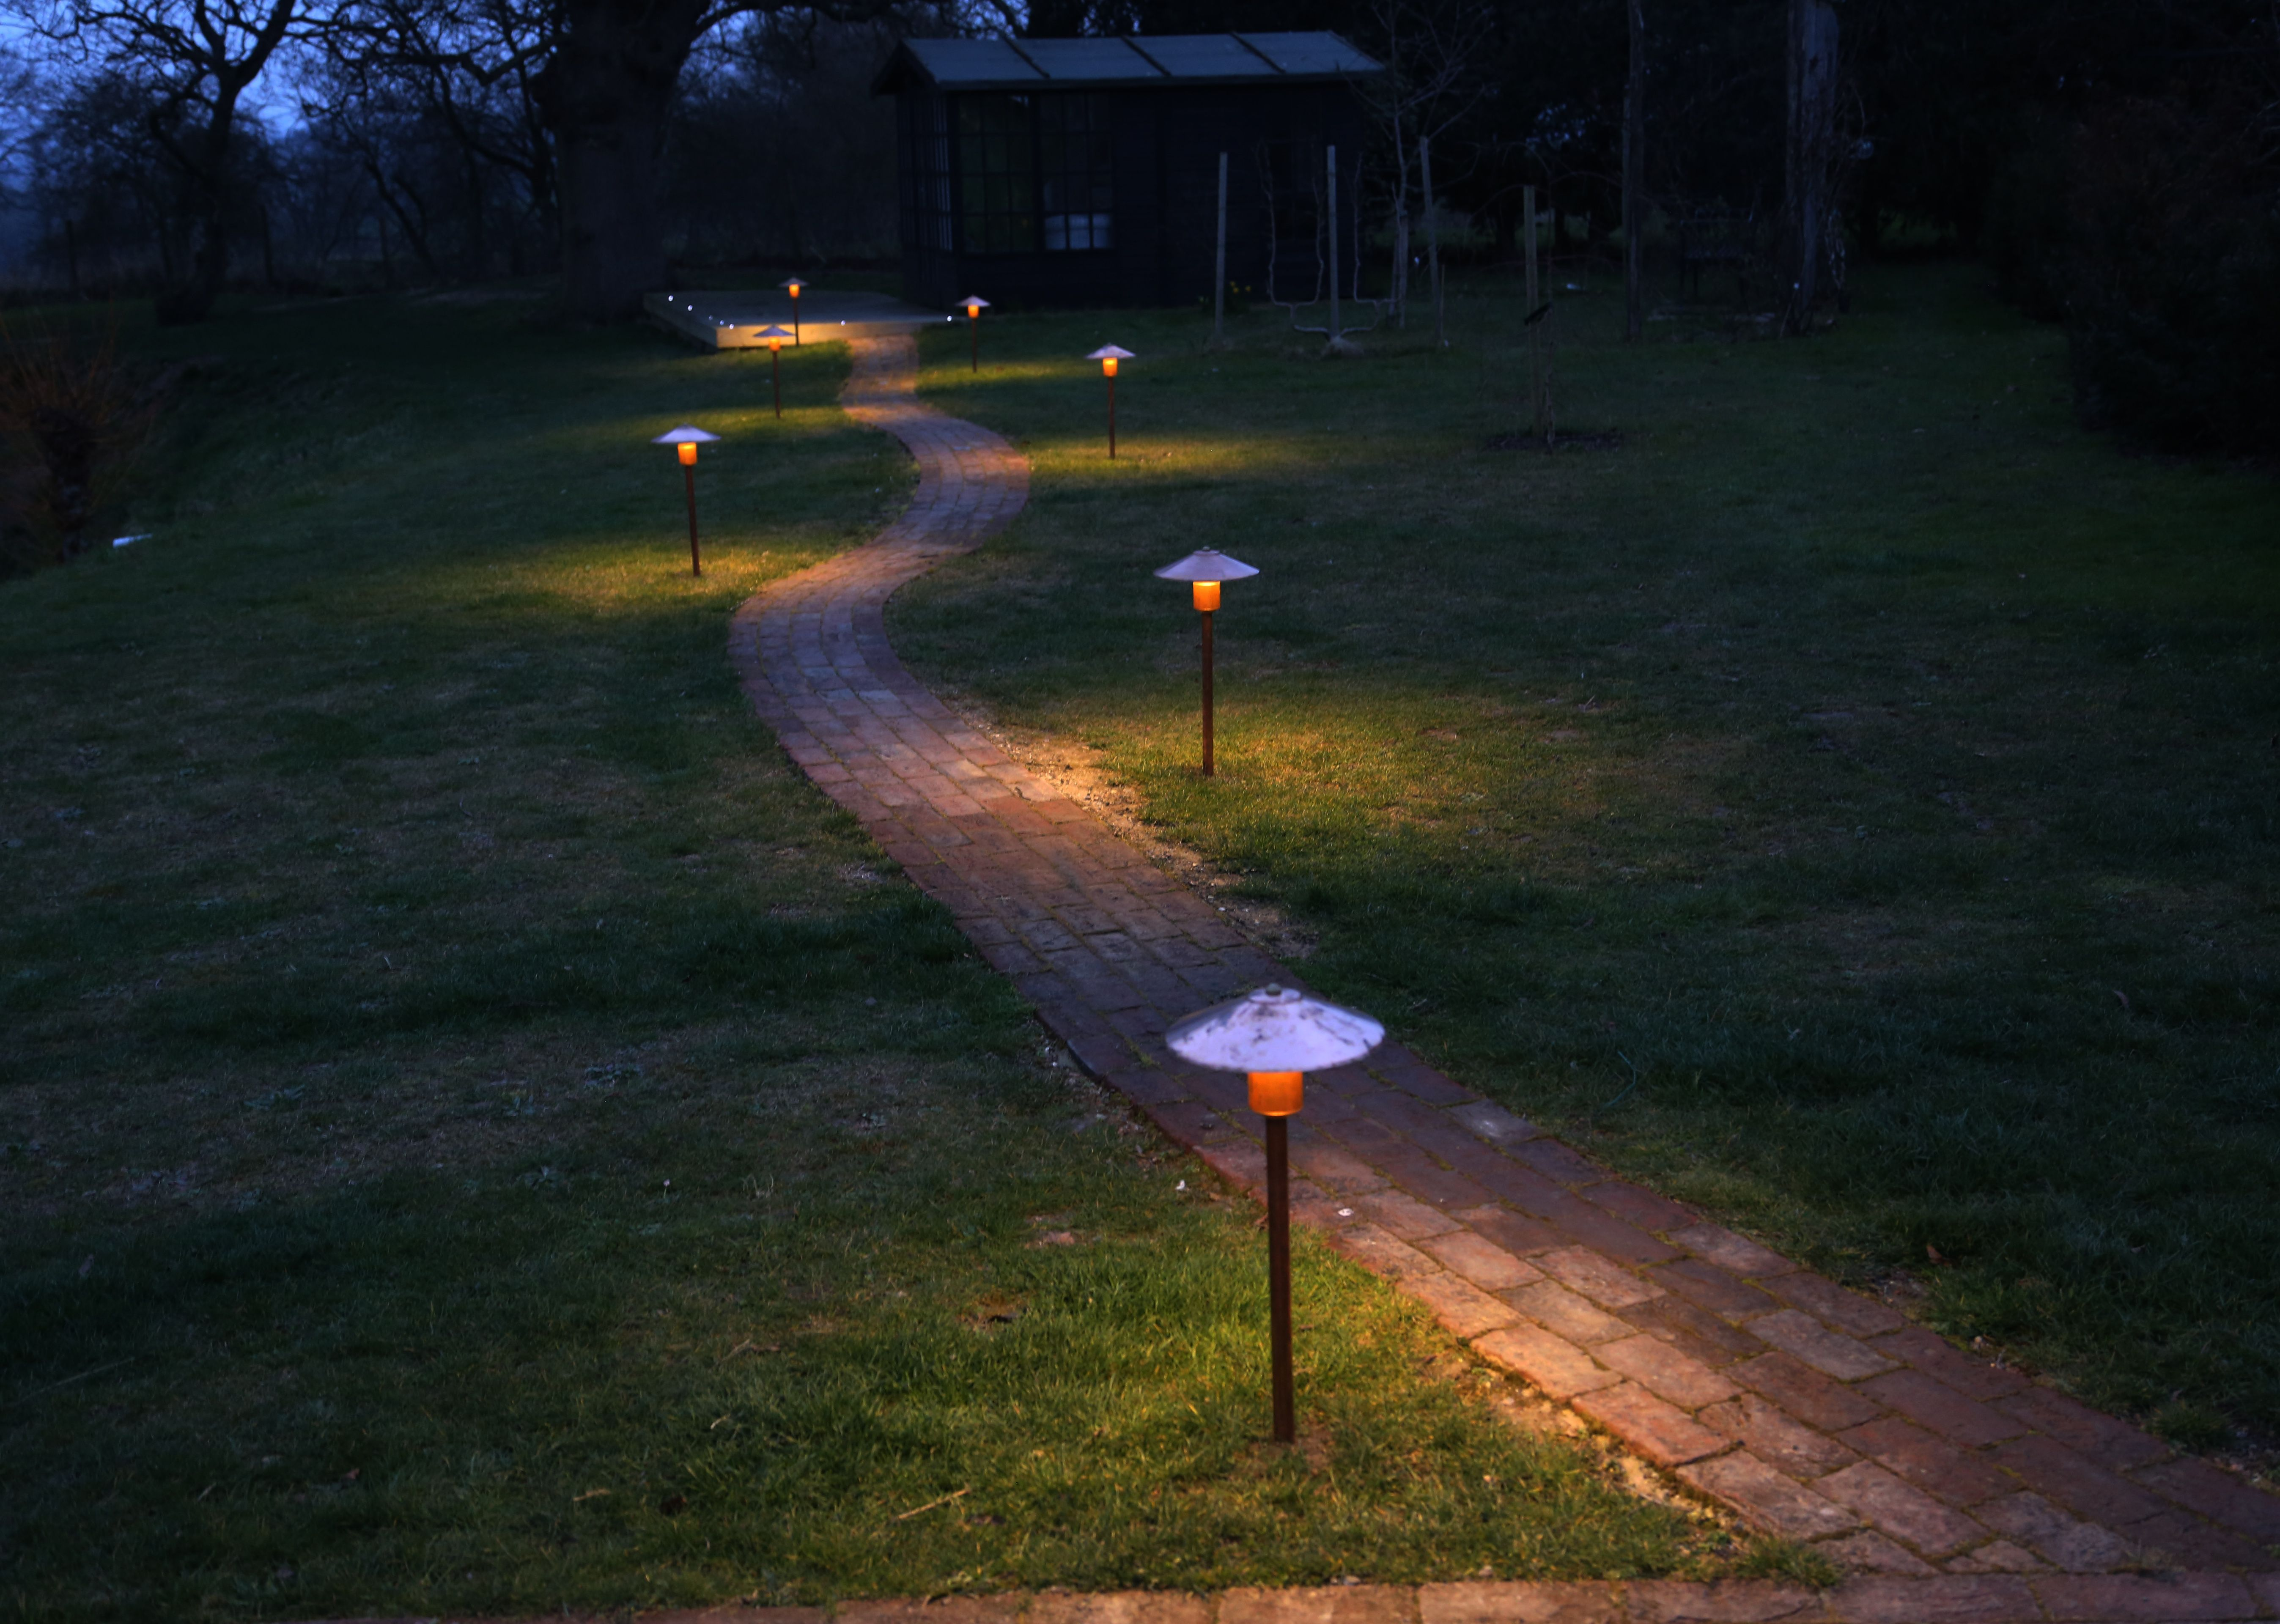 Hunza Solid Copper Tier Lights Were Used To Illuminate The Path To This Summerhouse Outdoor Lighting Path Lights Garden Lighting